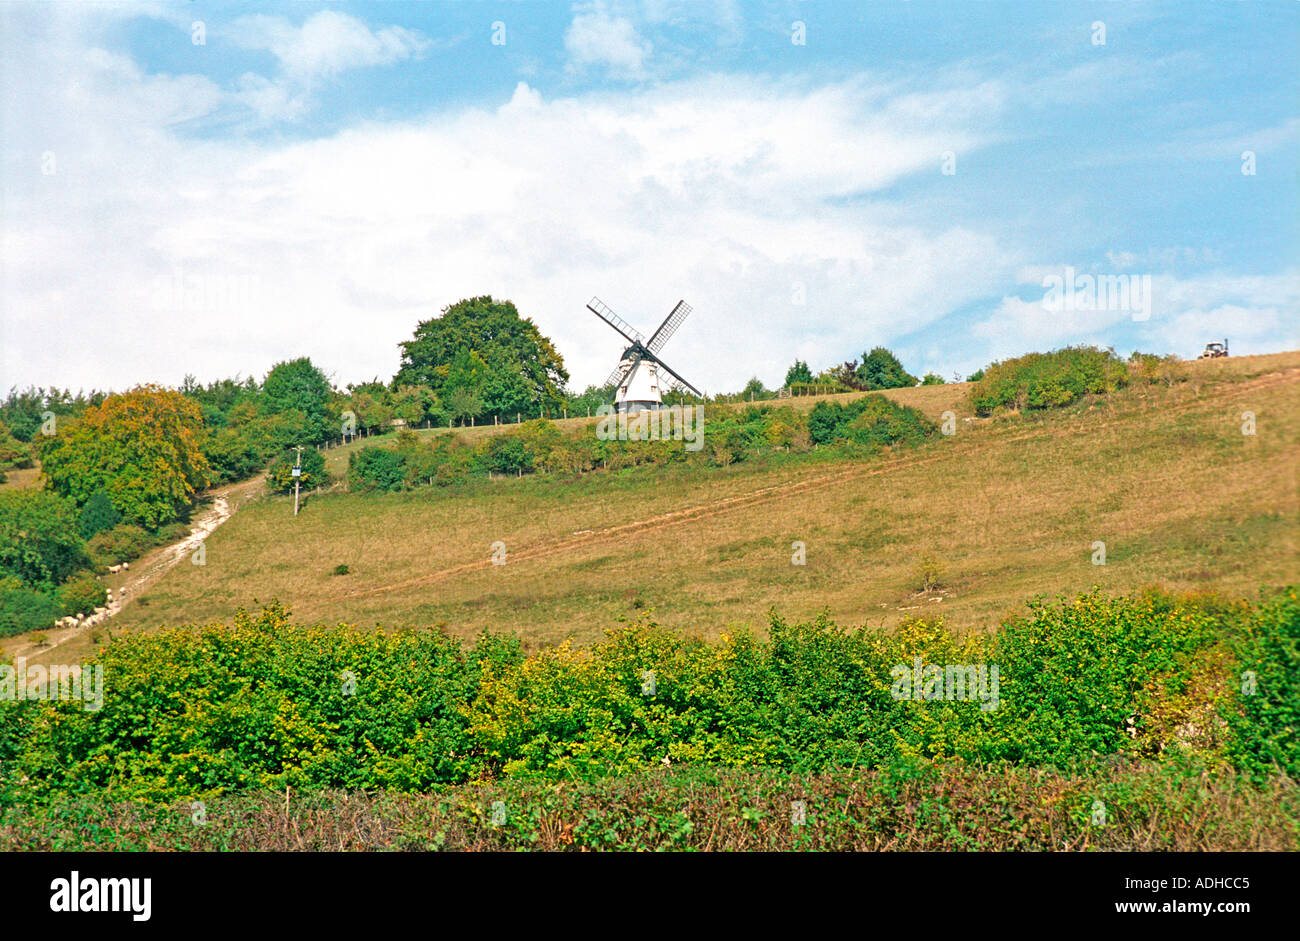 Windmill crowns the local countryside scene of many films and TV shows - Stock Image